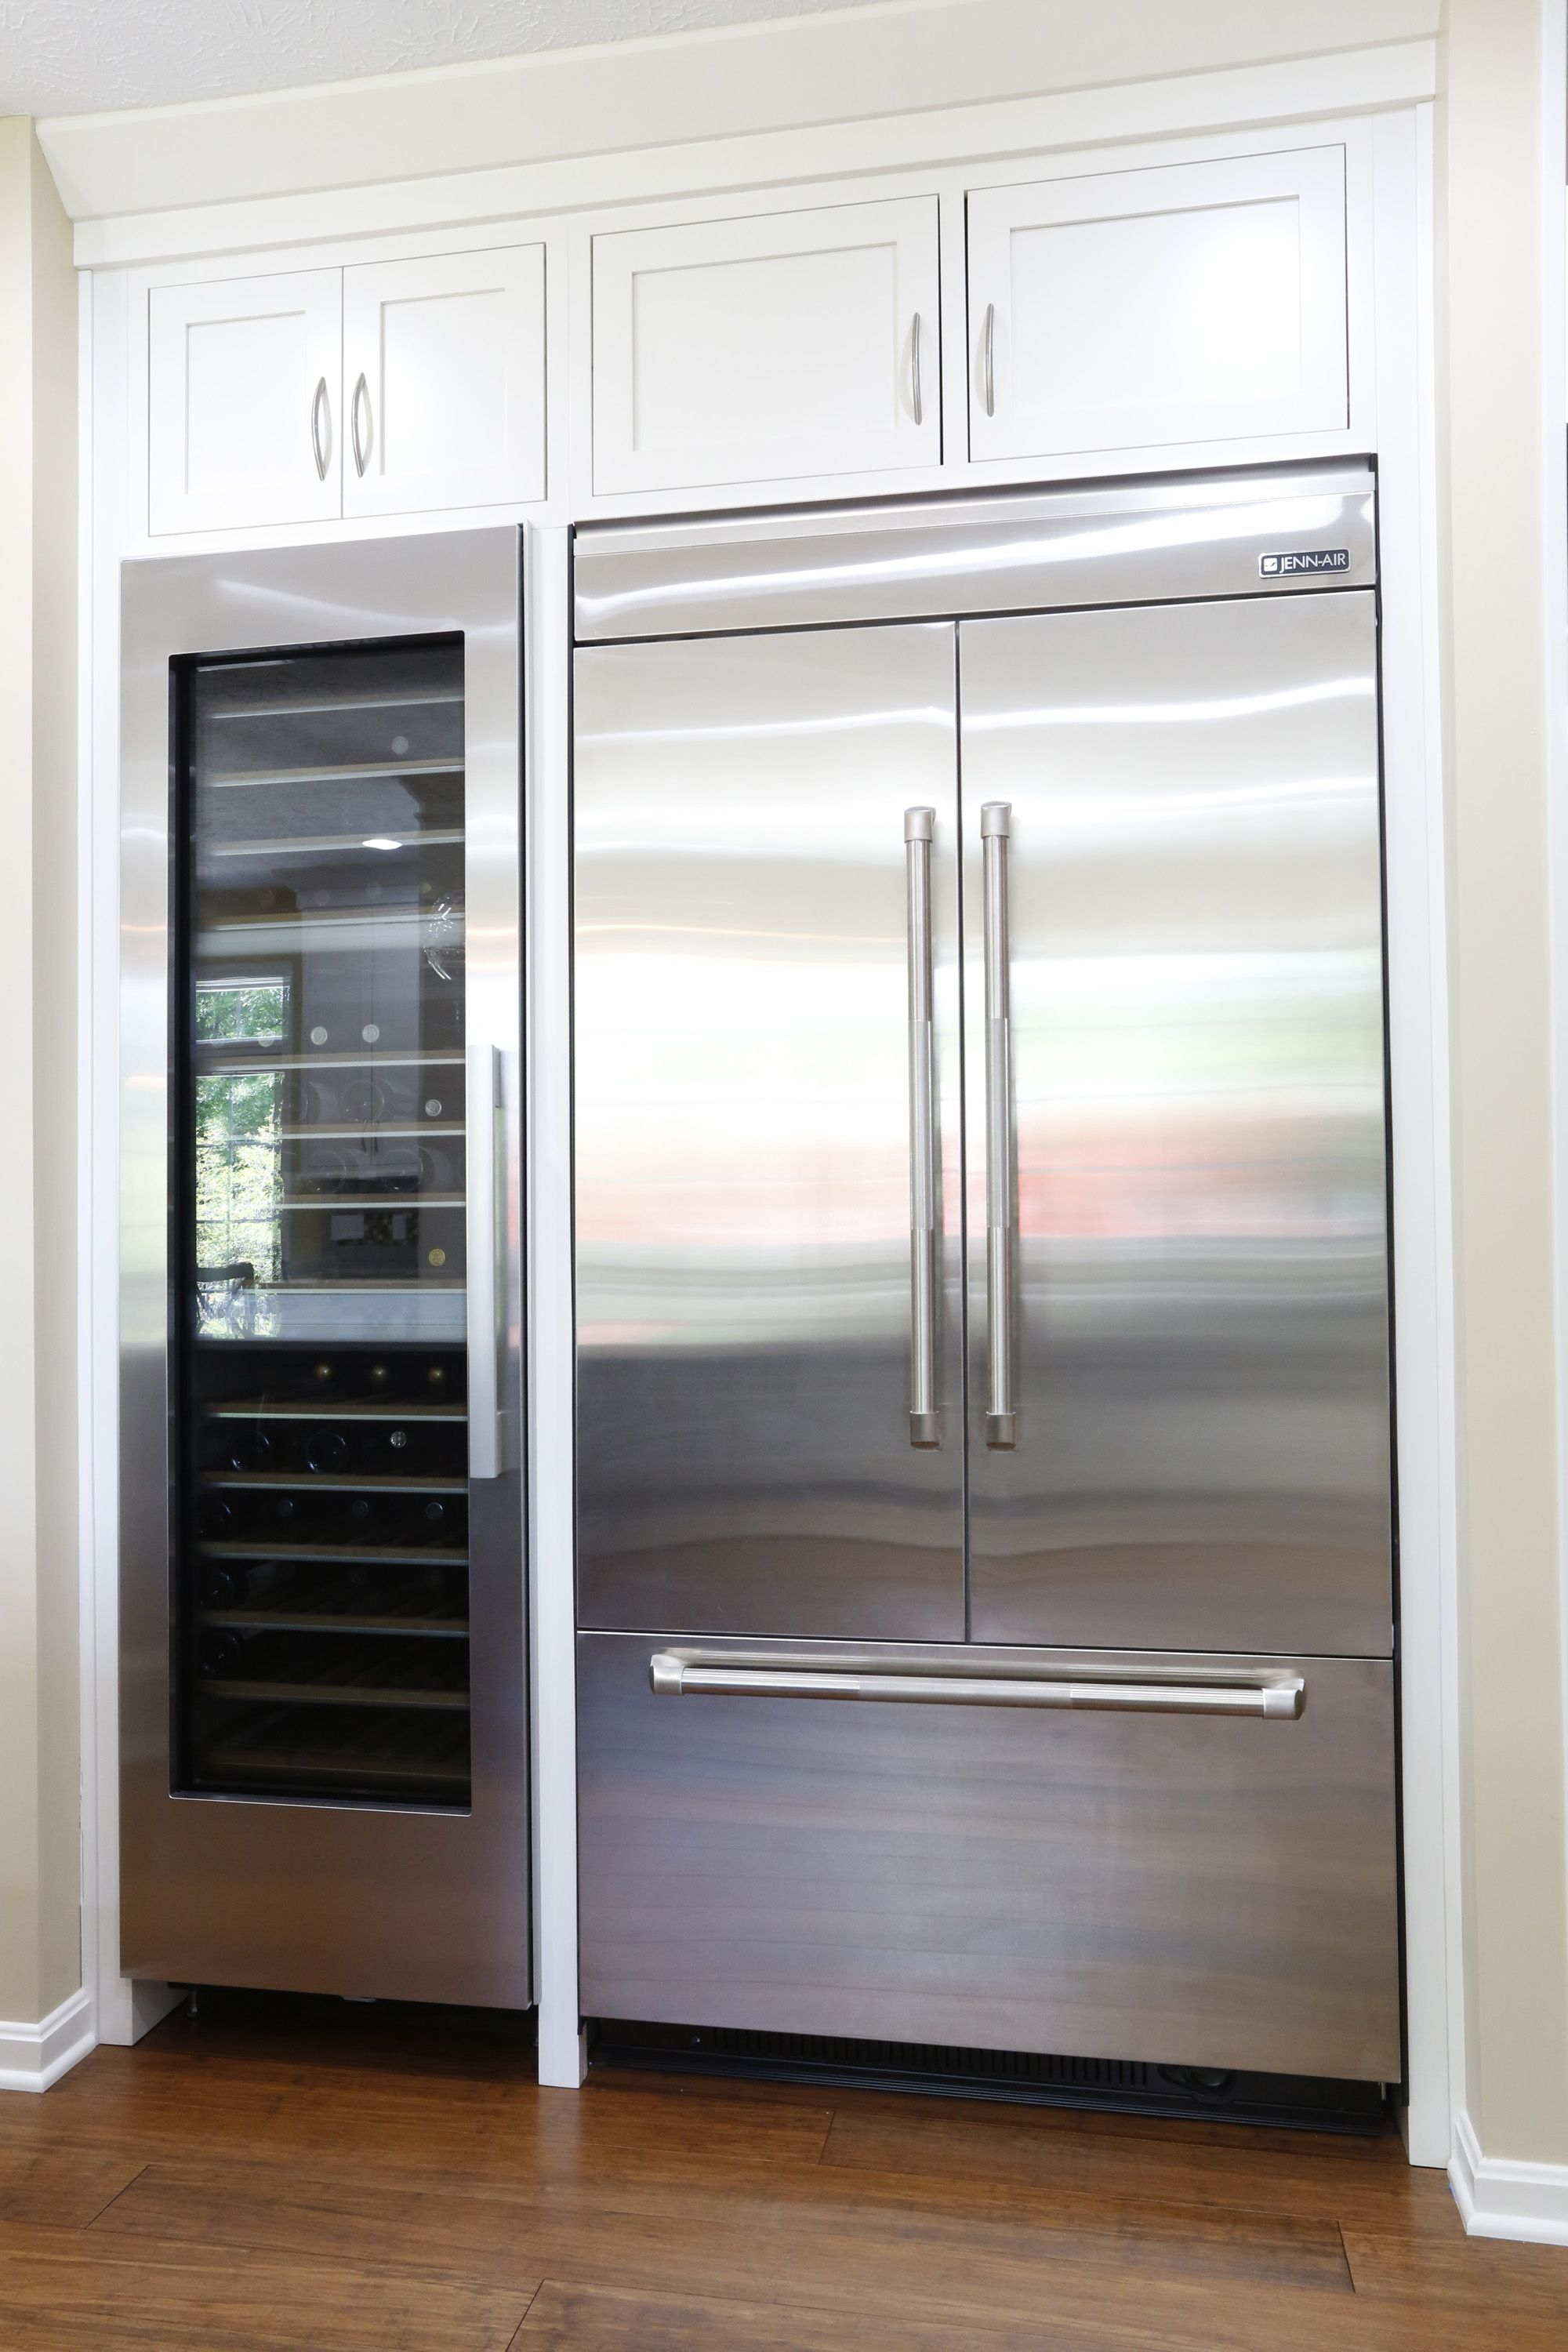 Jenn Air 42 Integrated Built In French Door Refrigerator Next To A Miele Wine Fridge Has This Kitchen Ready And Pr Kitchen Inspirations Kitchen Kitchen Design